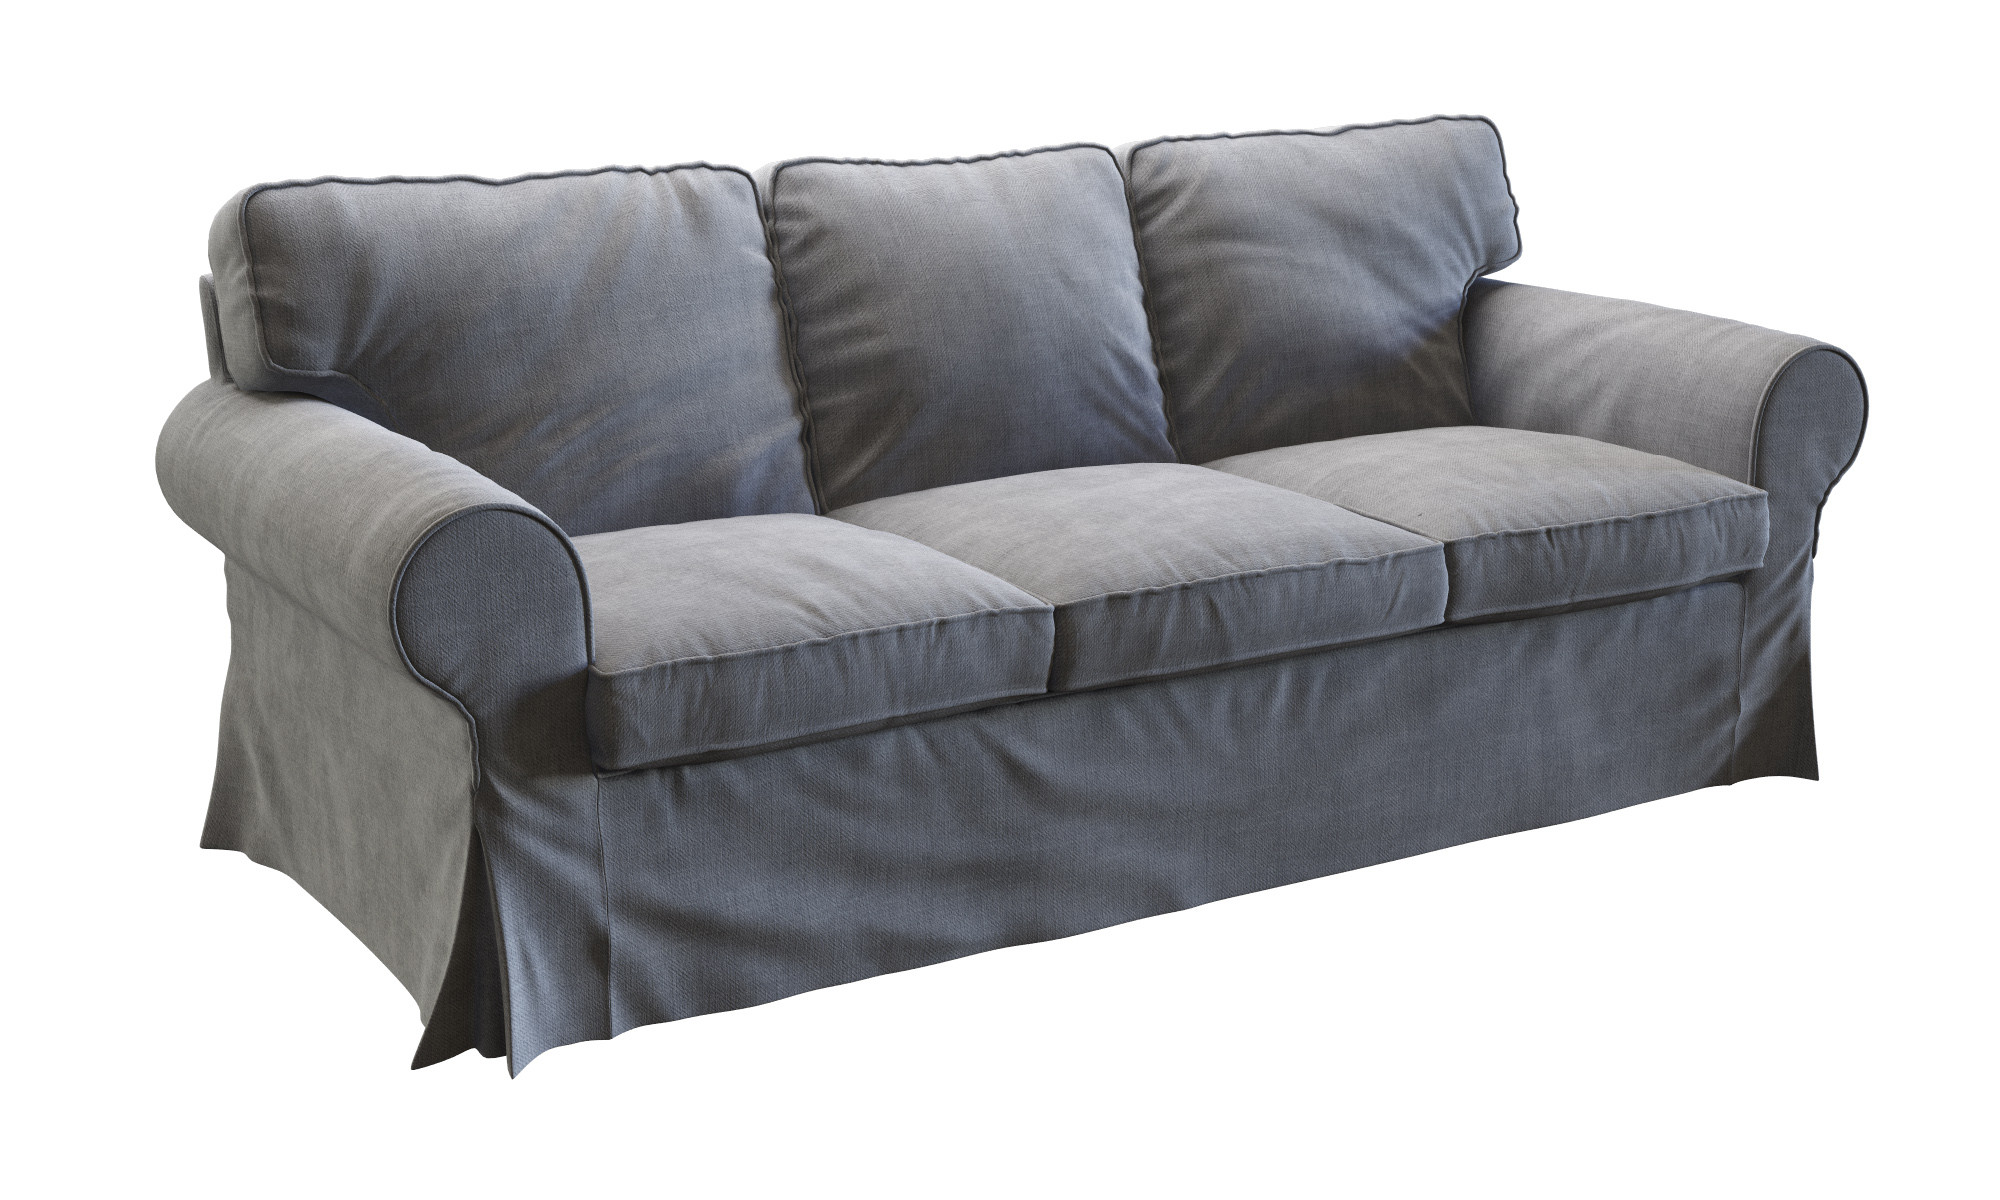 ikea ektorp sofa roselawnlutheran. Black Bedroom Furniture Sets. Home Design Ideas